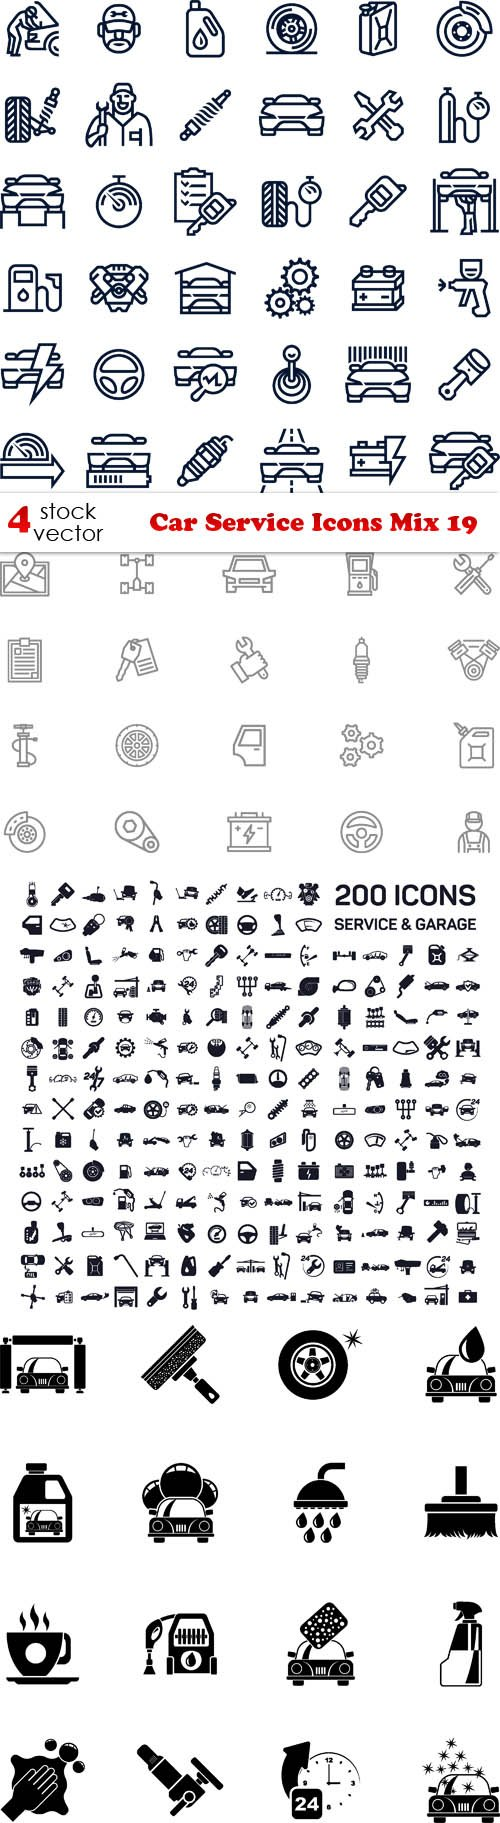 Vectors - Car Service Icons Mix 19